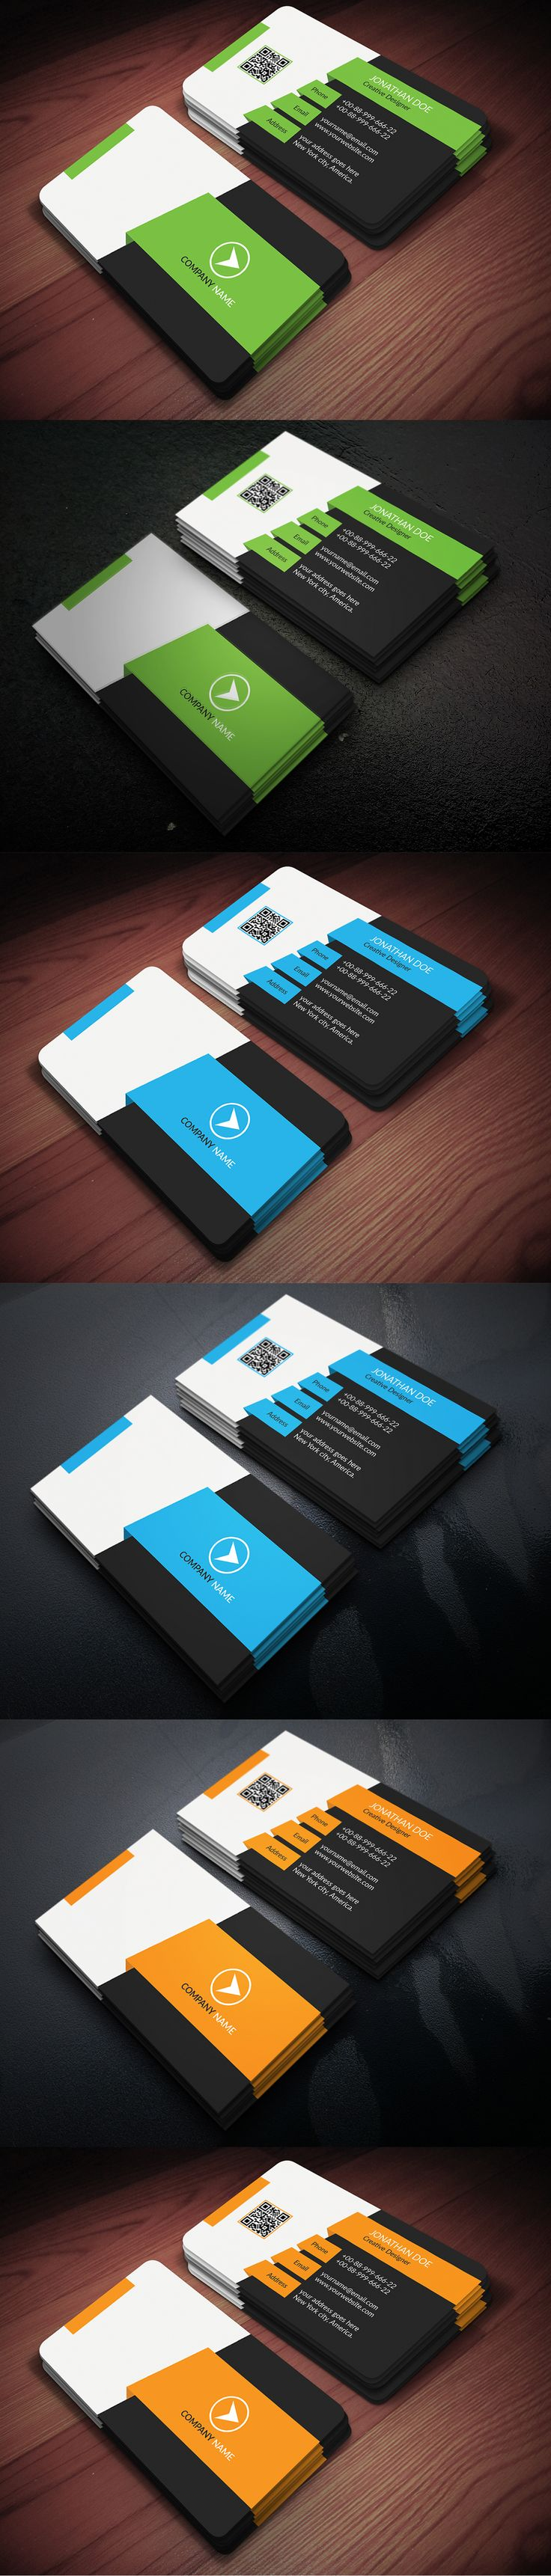 10 best print business card in ha noi images on pinterest